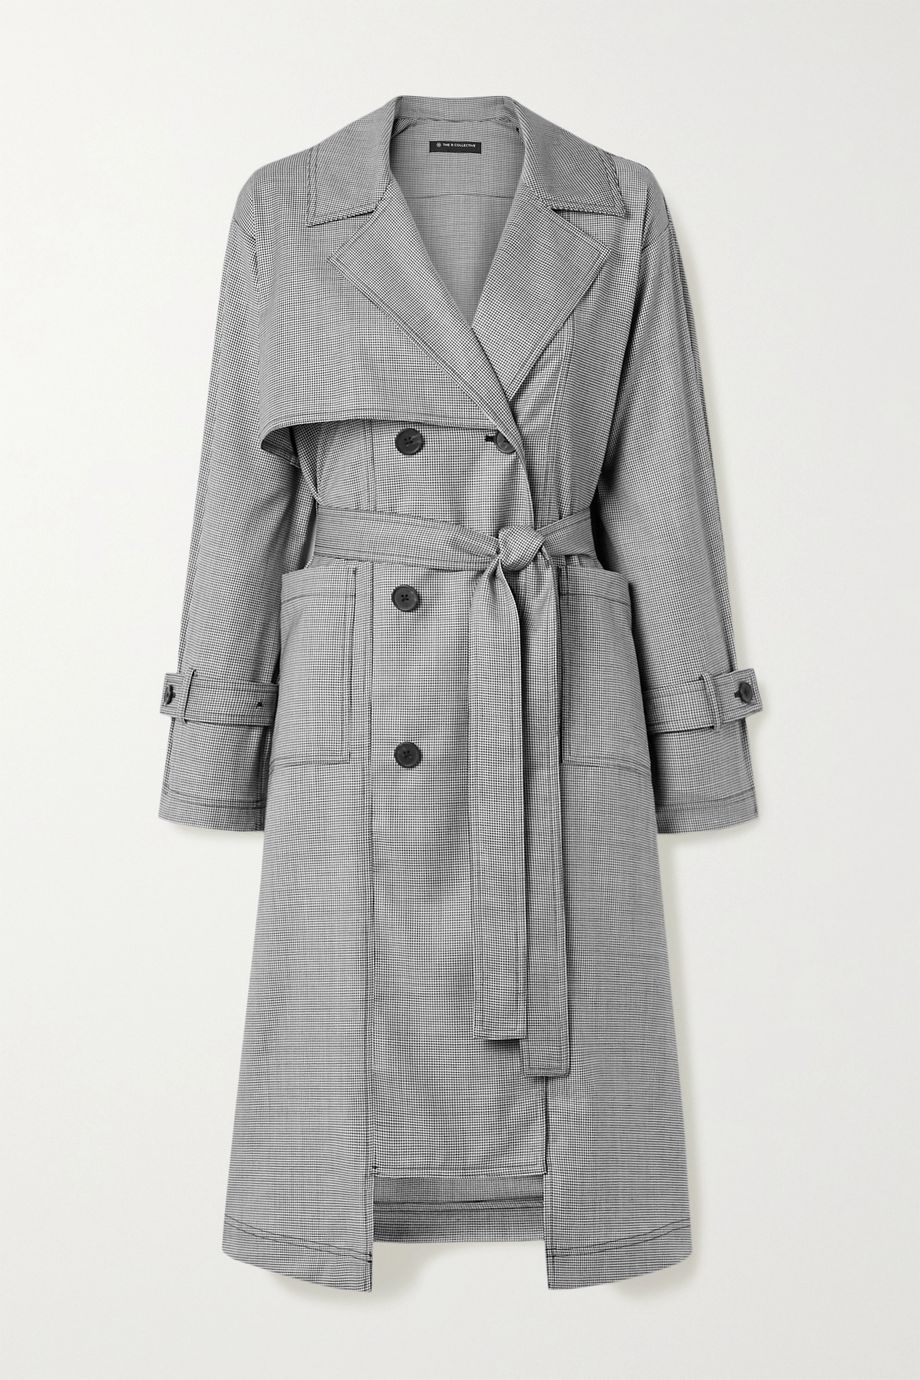 The R Collective + NET SUSTAIN + Wen Pan Dalston belted houndstooth wool trench coat